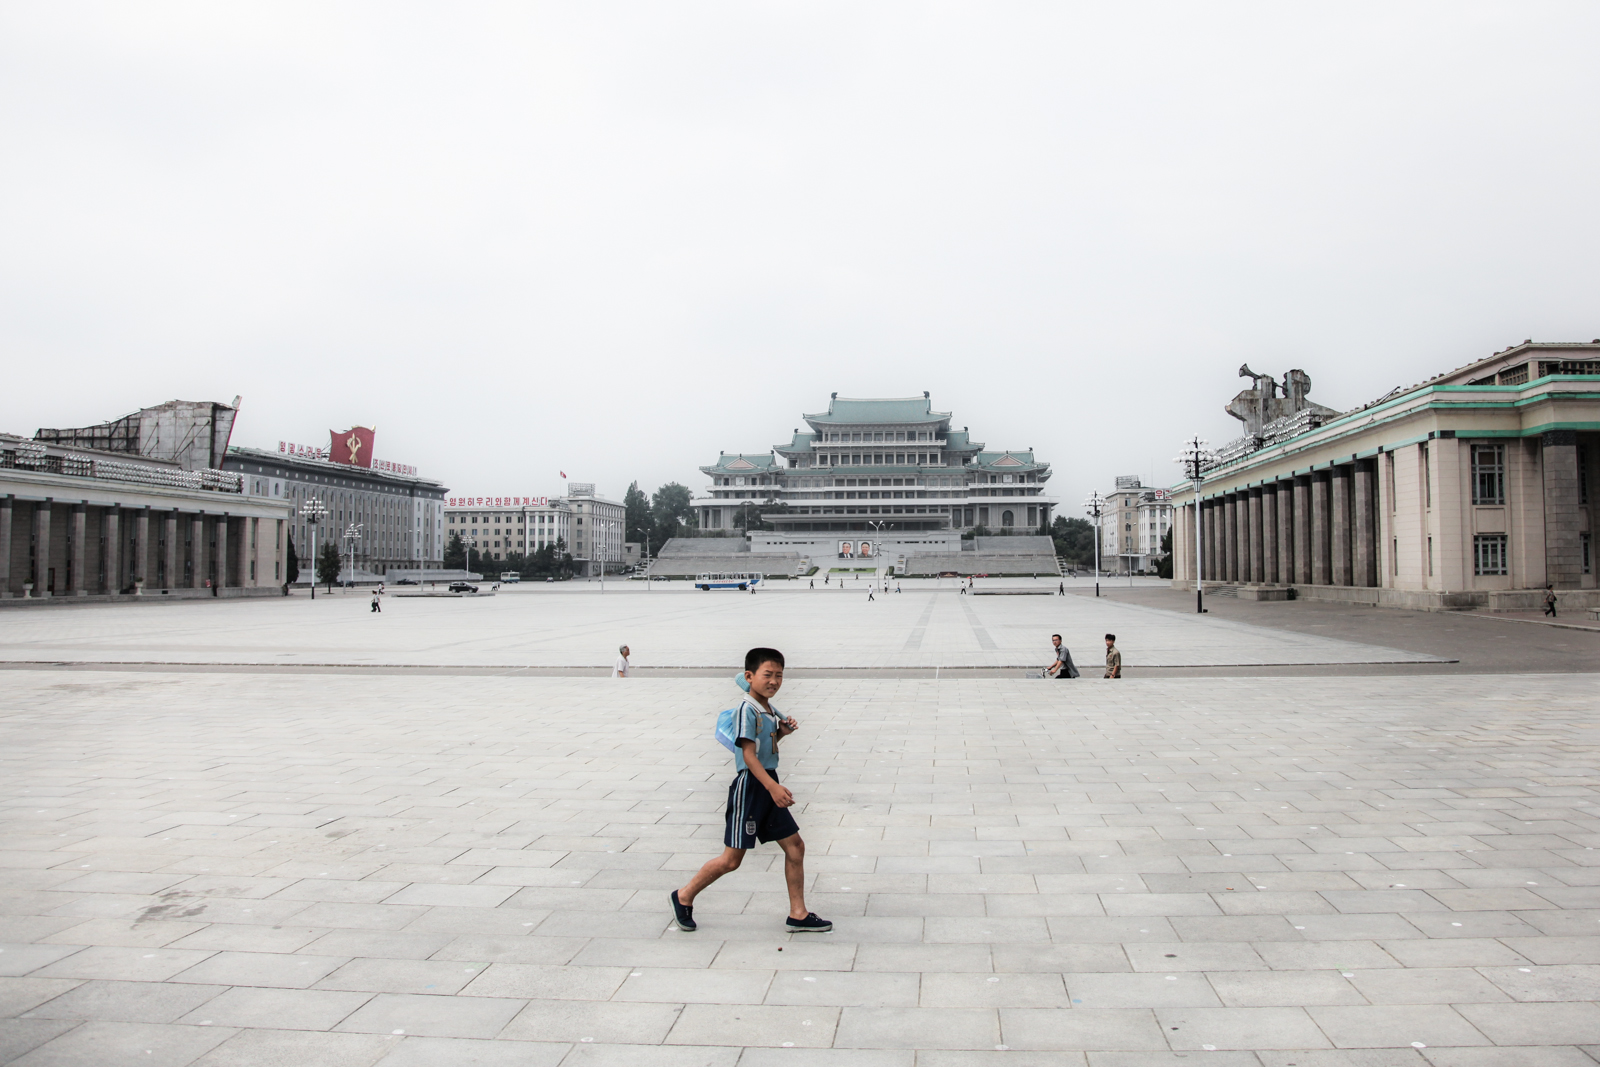 A North Korean boy in Pyongyang's central square.